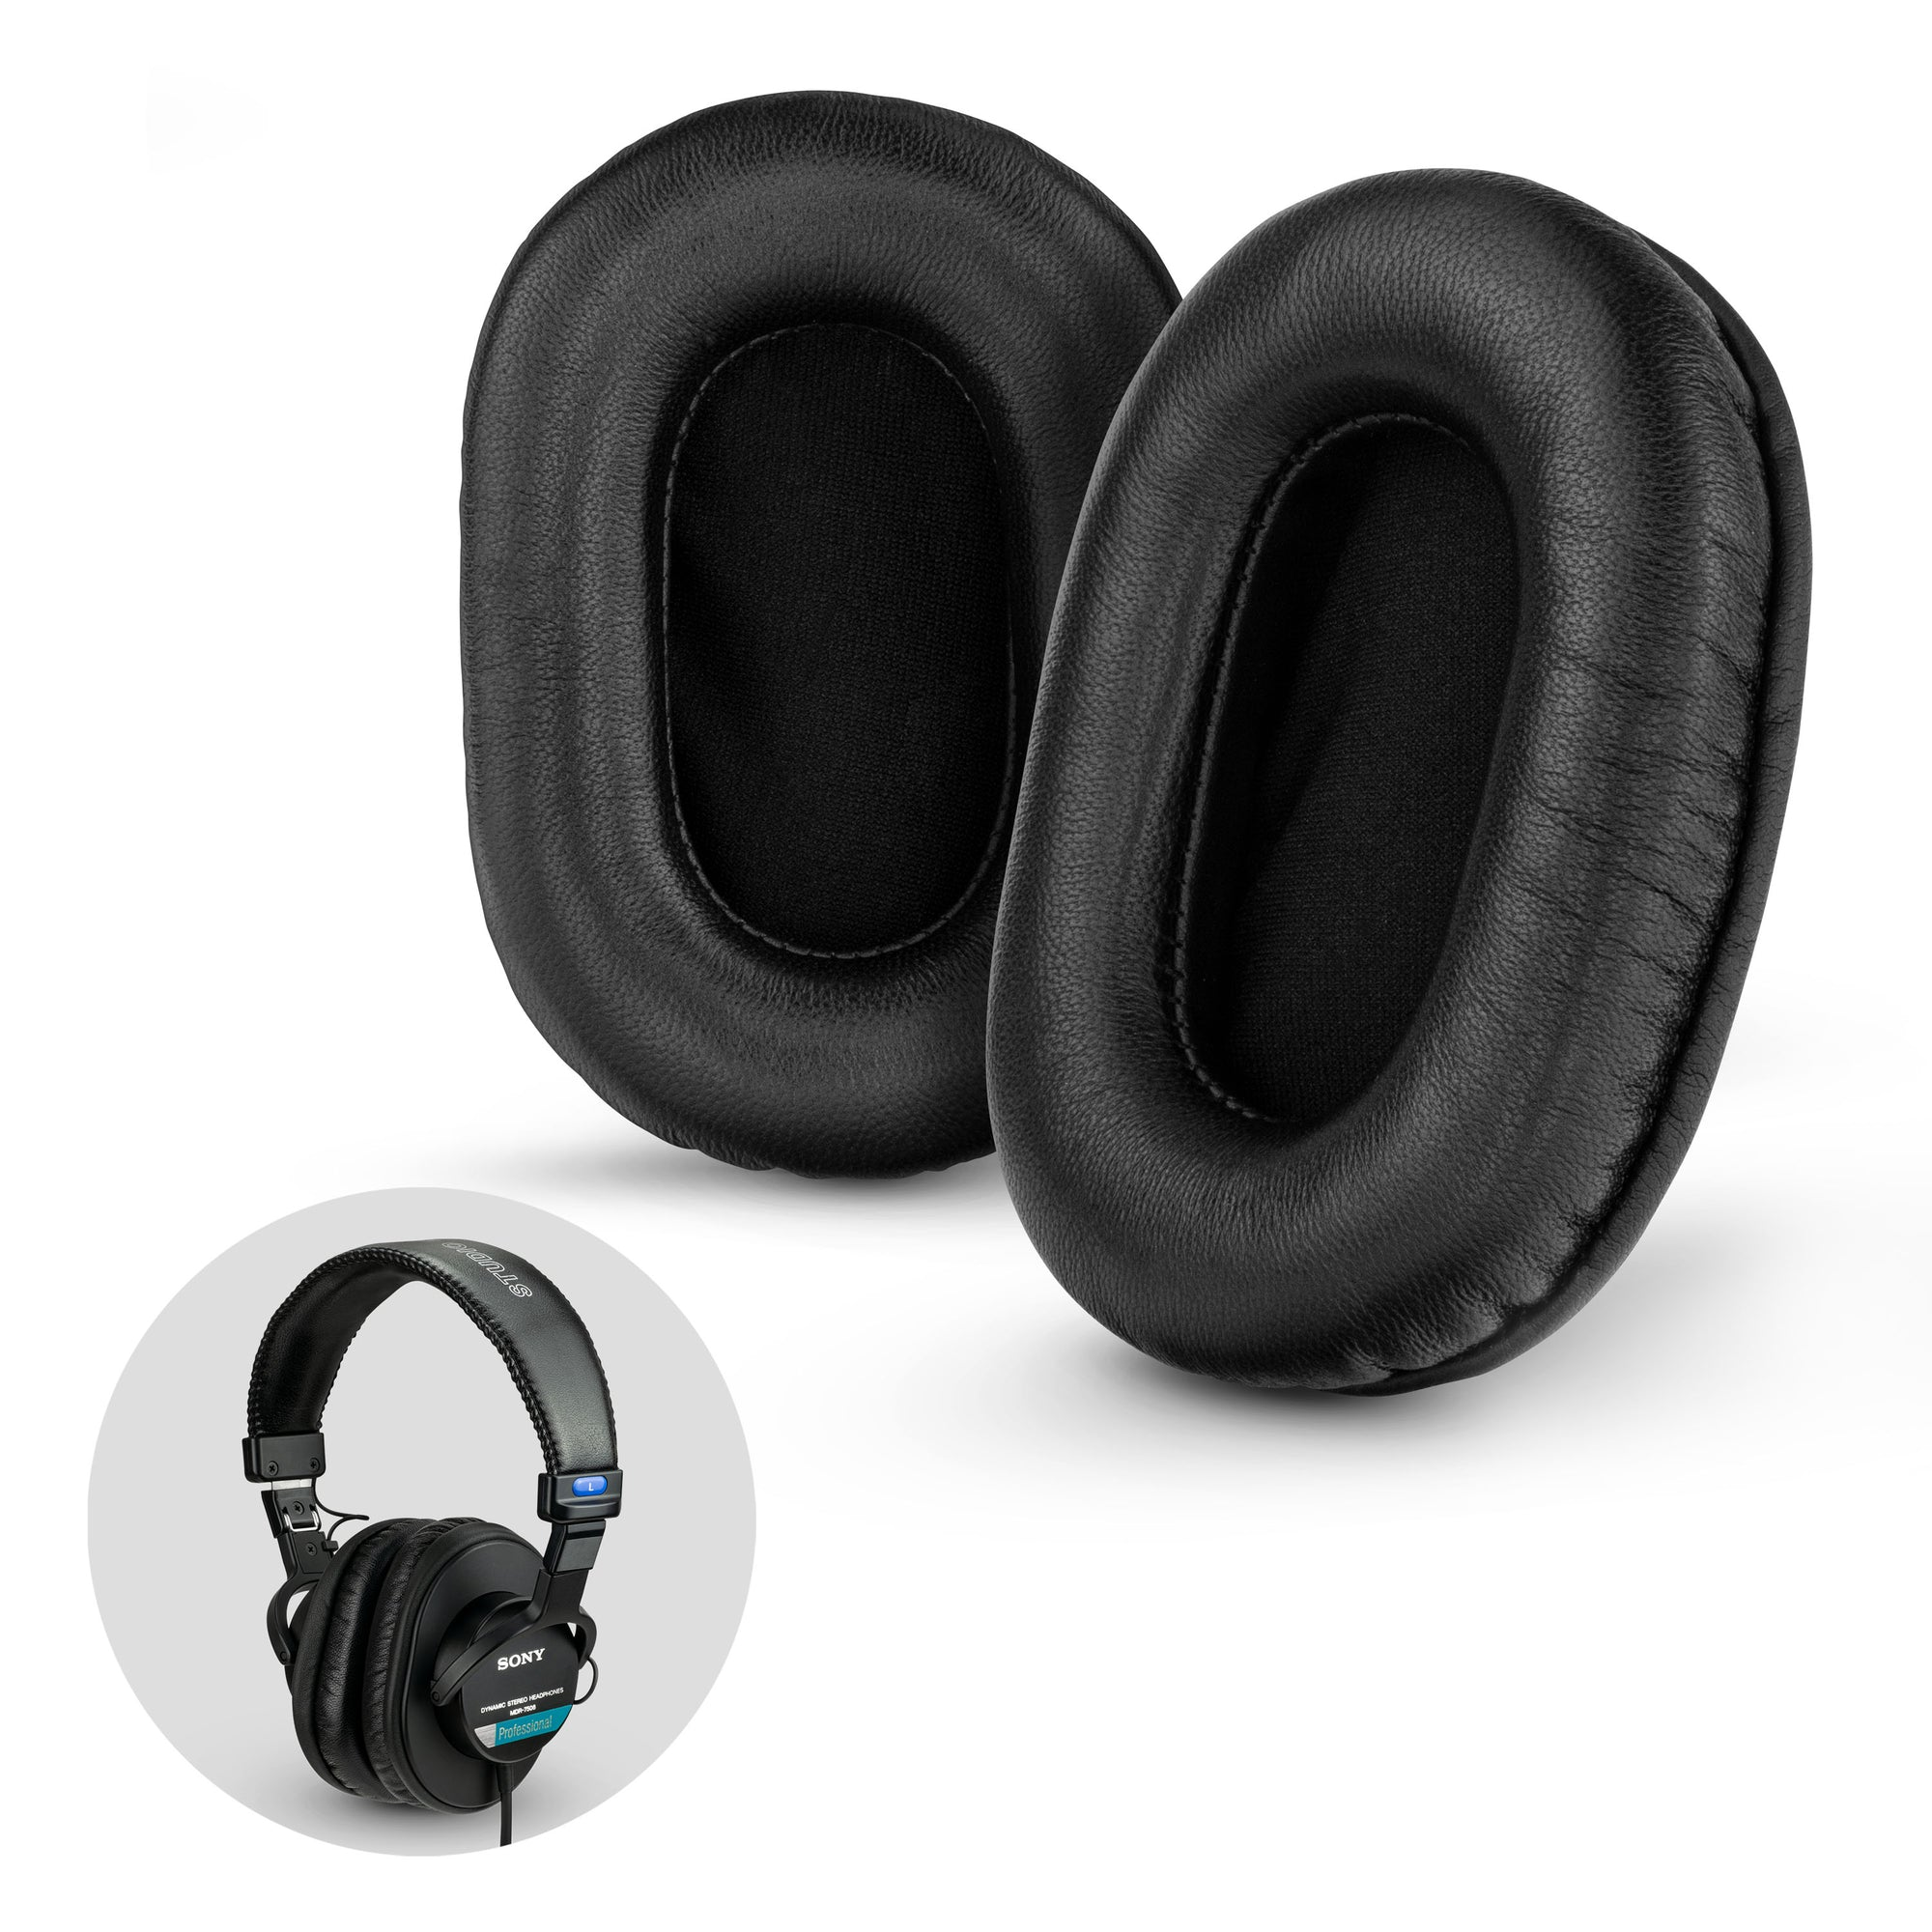 Sheepskin Earpads for SONY MDR-7506 / V6 / CD900ST